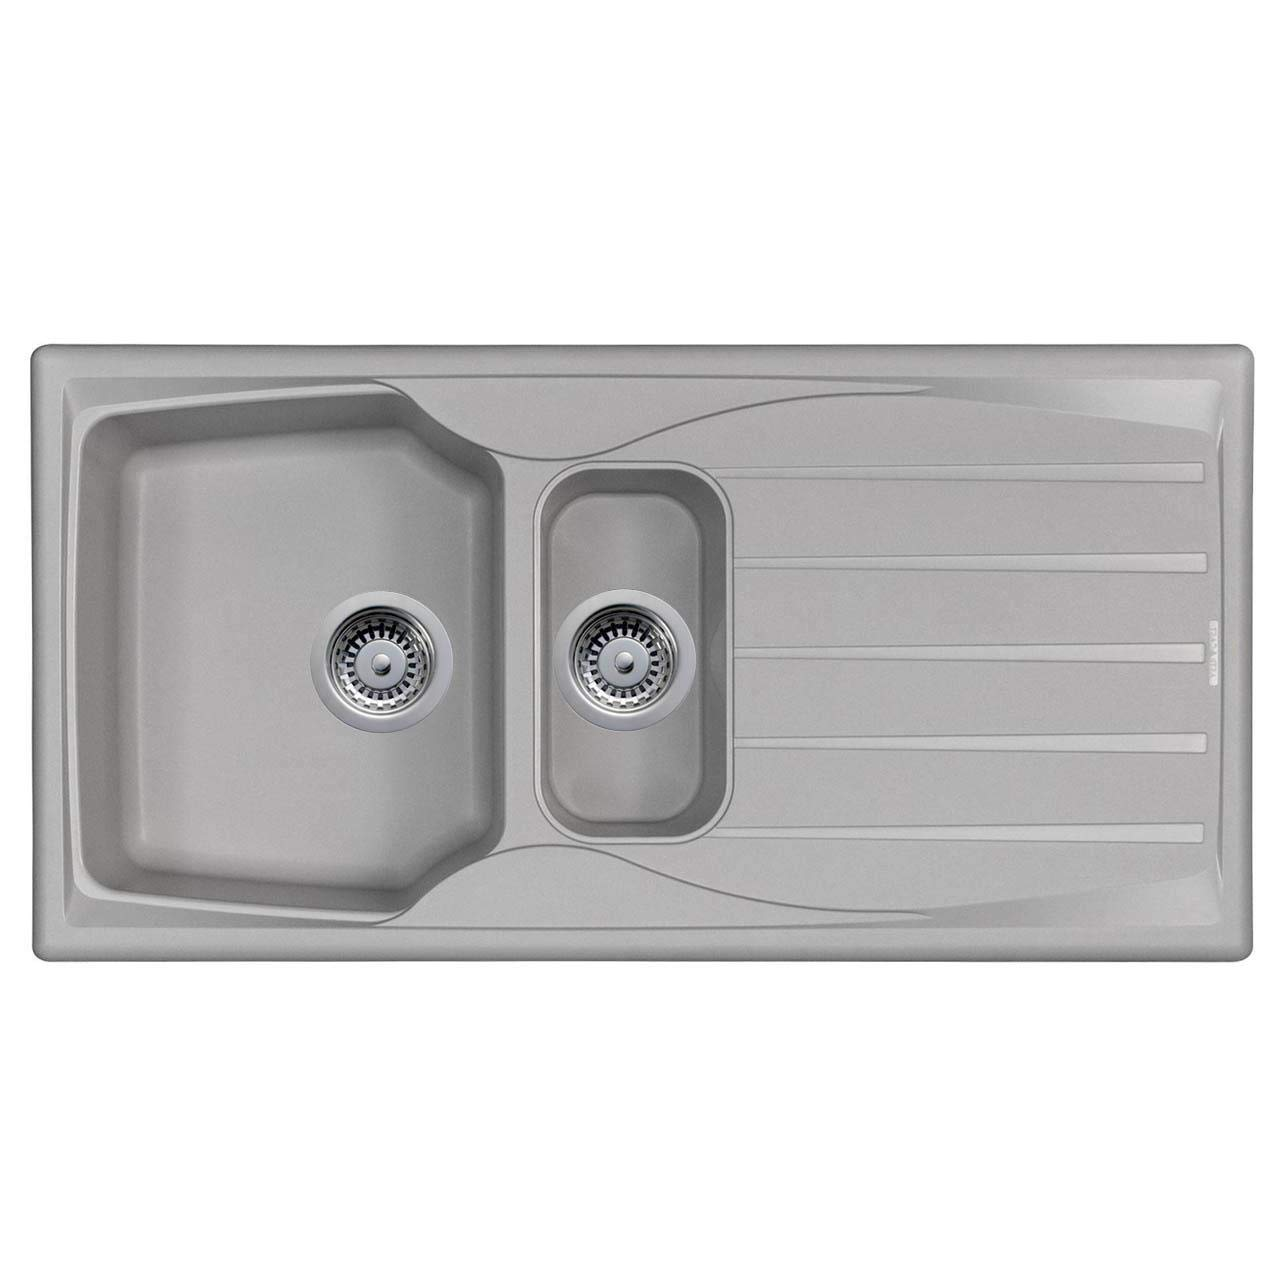 Astracast Sierra 1 5 Bowl Reversible Light Grey Kitchen Sink And Waste Kit Buy Online In Bahamas At Desertcart Productid 144017097